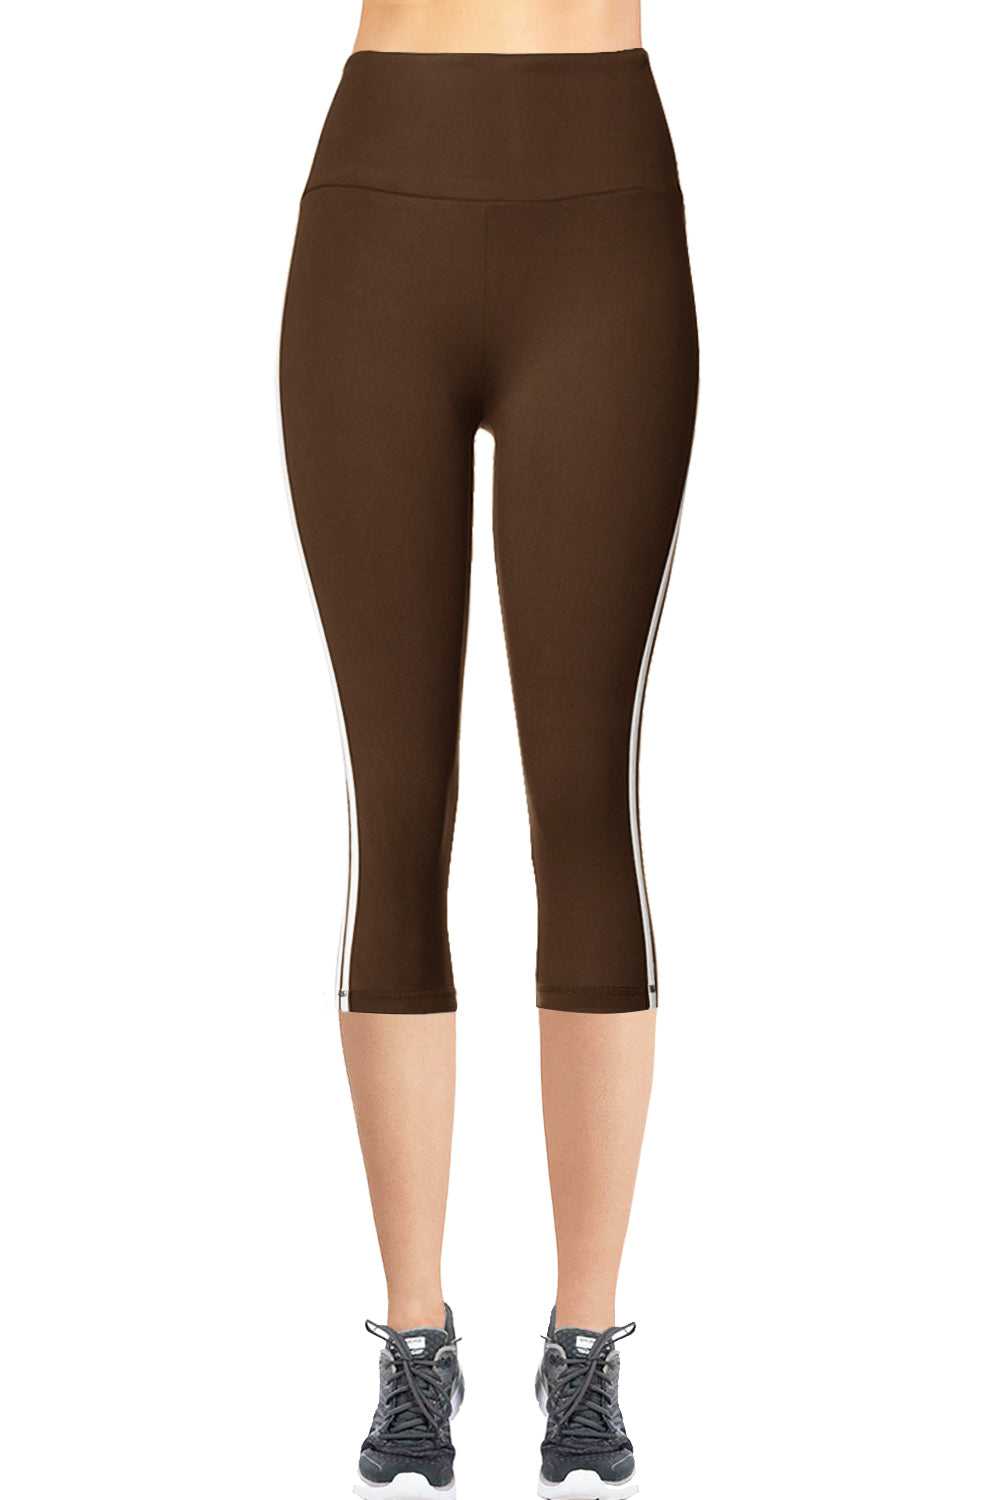 VIV Collection STRIPED Signature CAPRI Leggings Ultra Soft and Strong Tension Elastic YOGA MID WAIST w/ Hidden Pocket